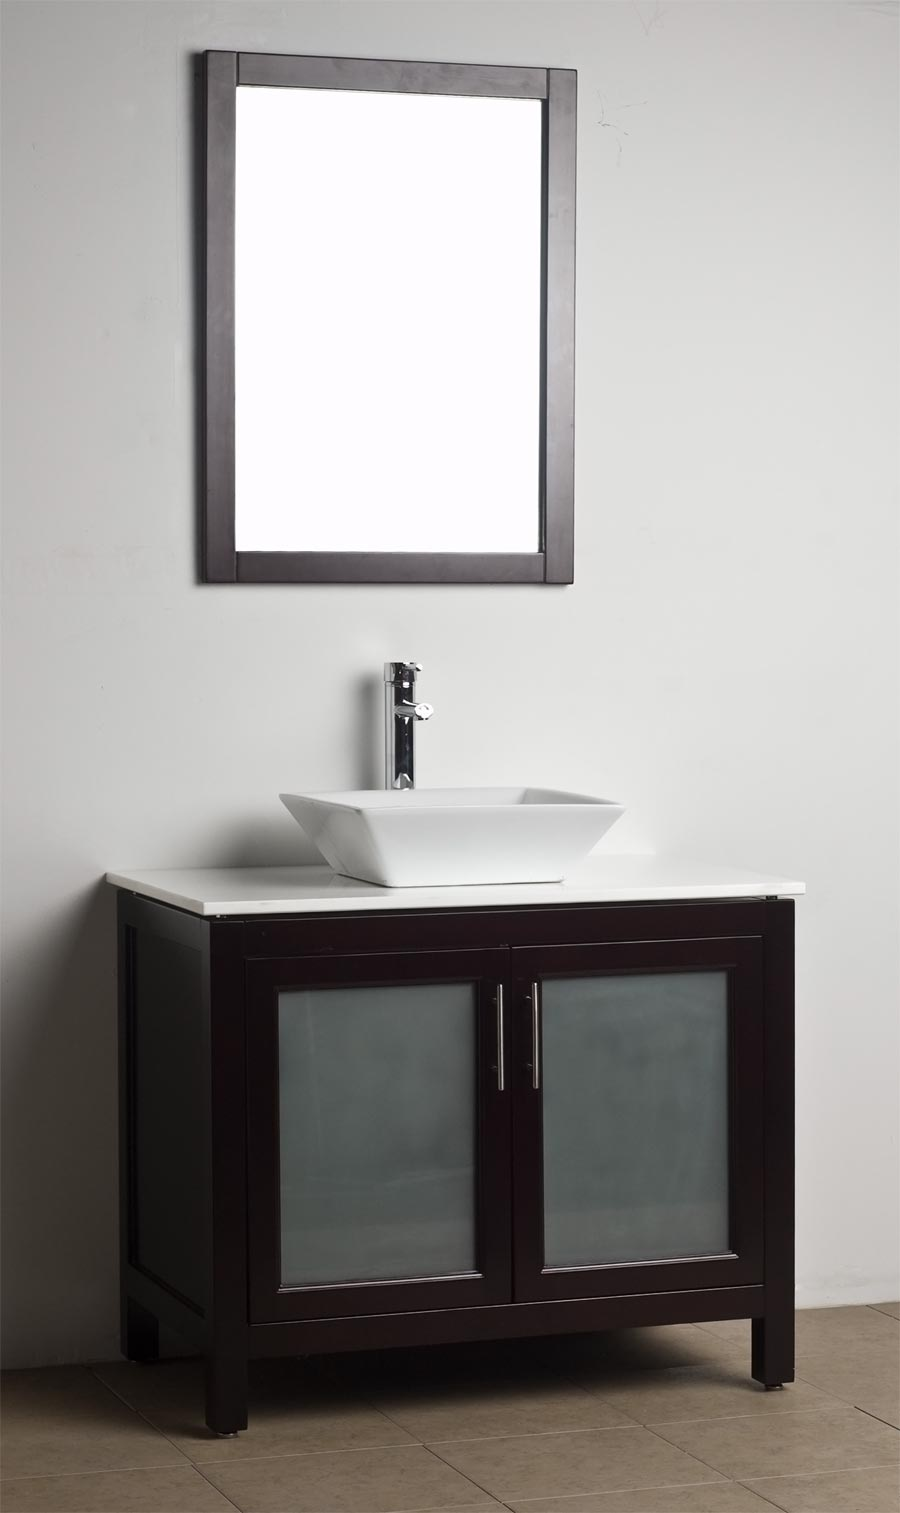 Bathroom vanity solid wood espresso wh 0908 5 for Bathroom vanities